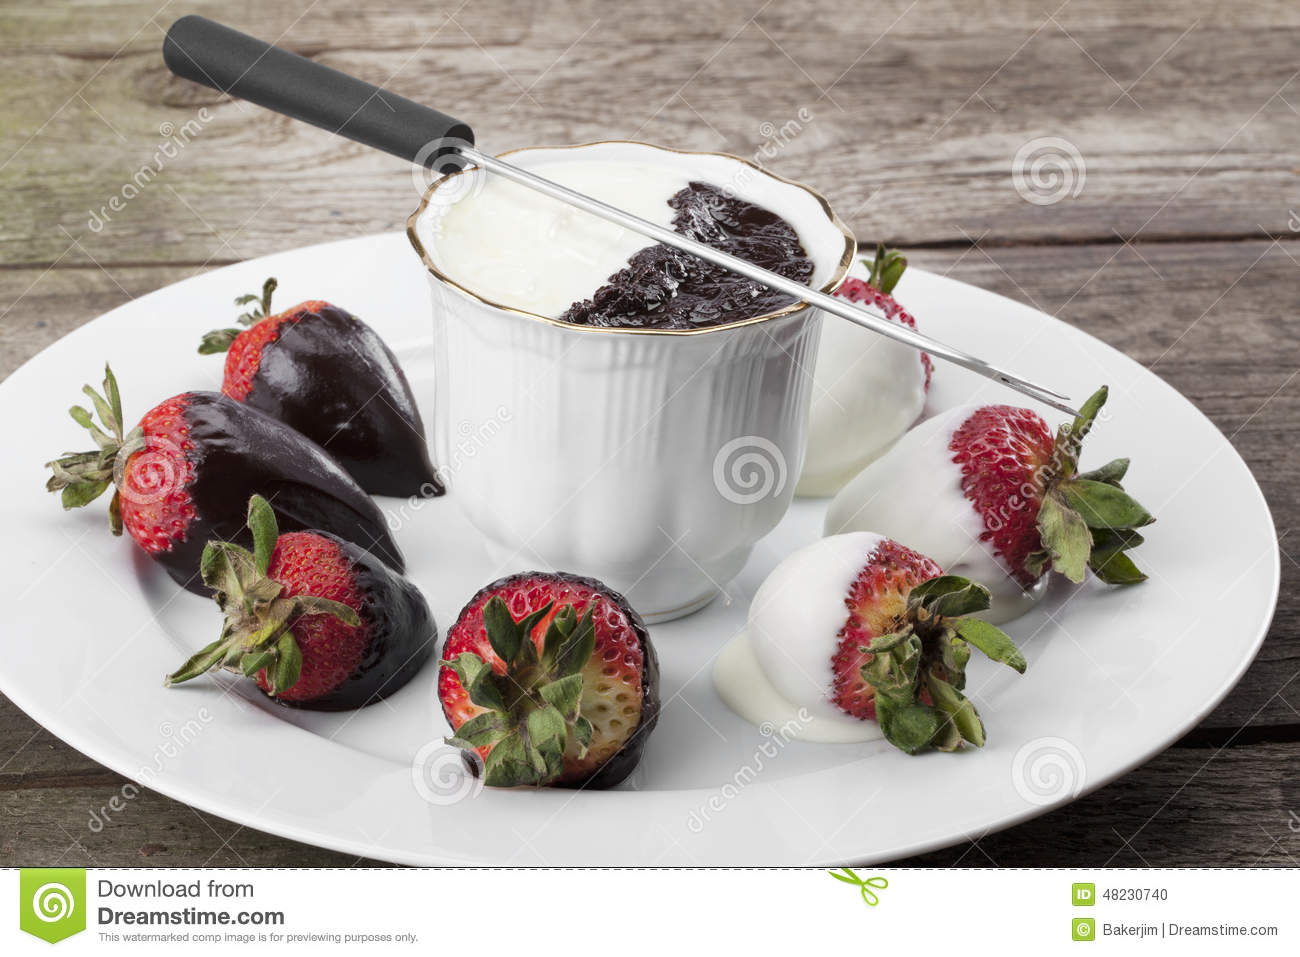 White and dark chocolate in cup with strawberries.